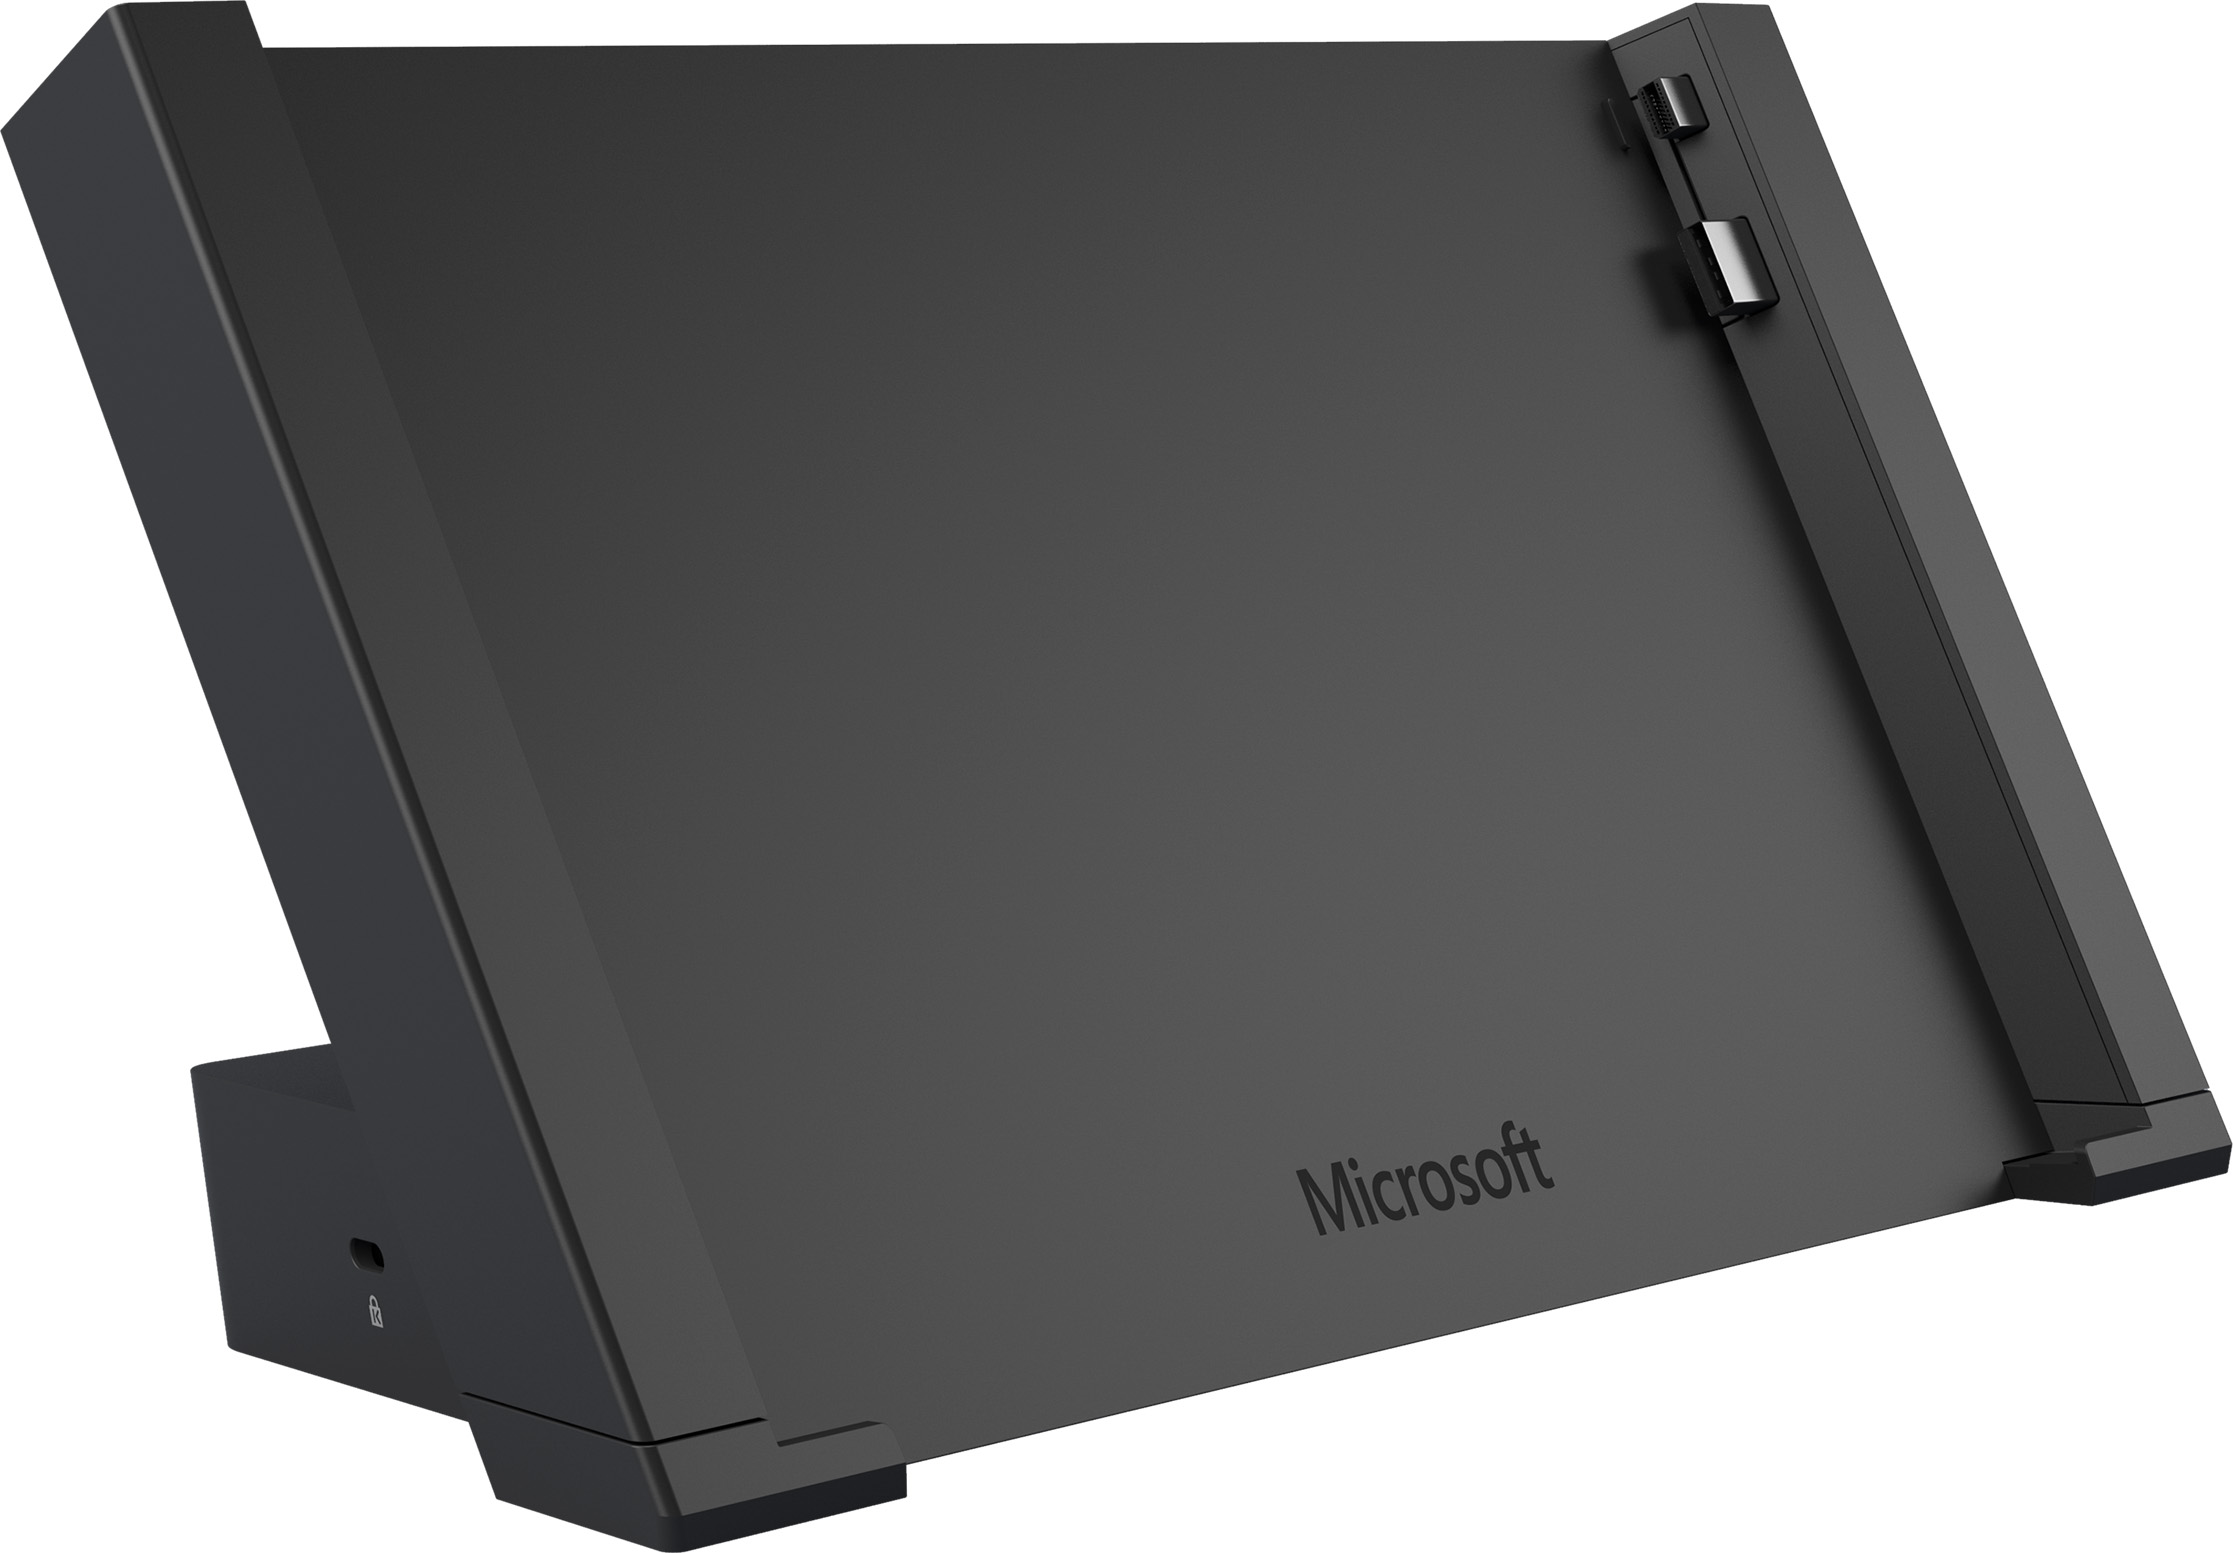 Surface 3 Docking Station, right facing